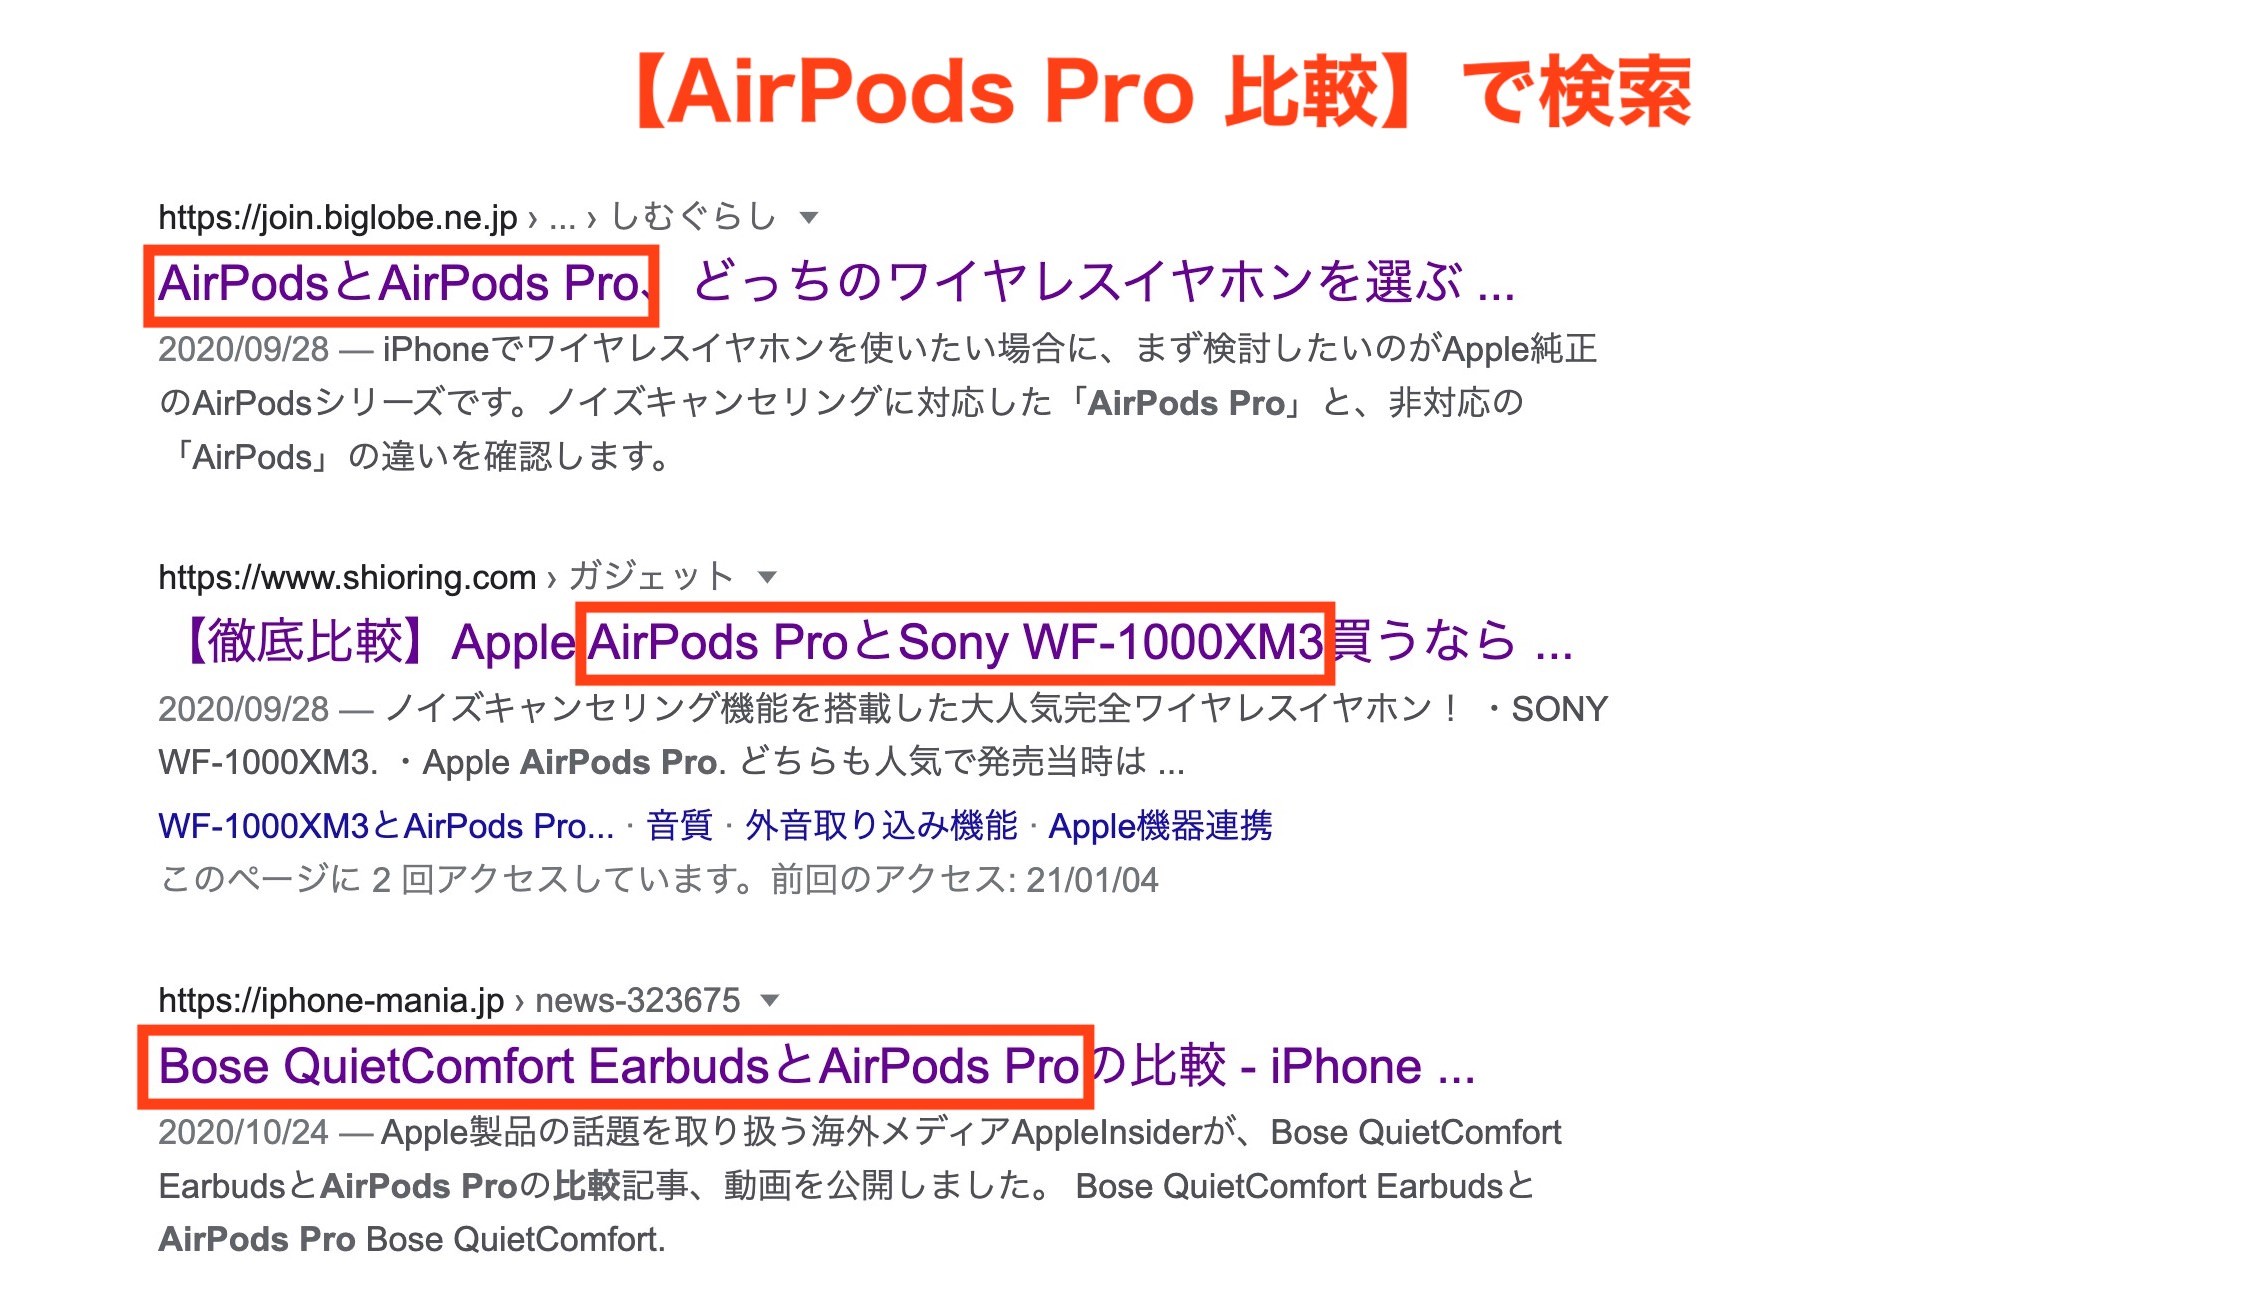 【AirPods Pro 比較】の検索結果